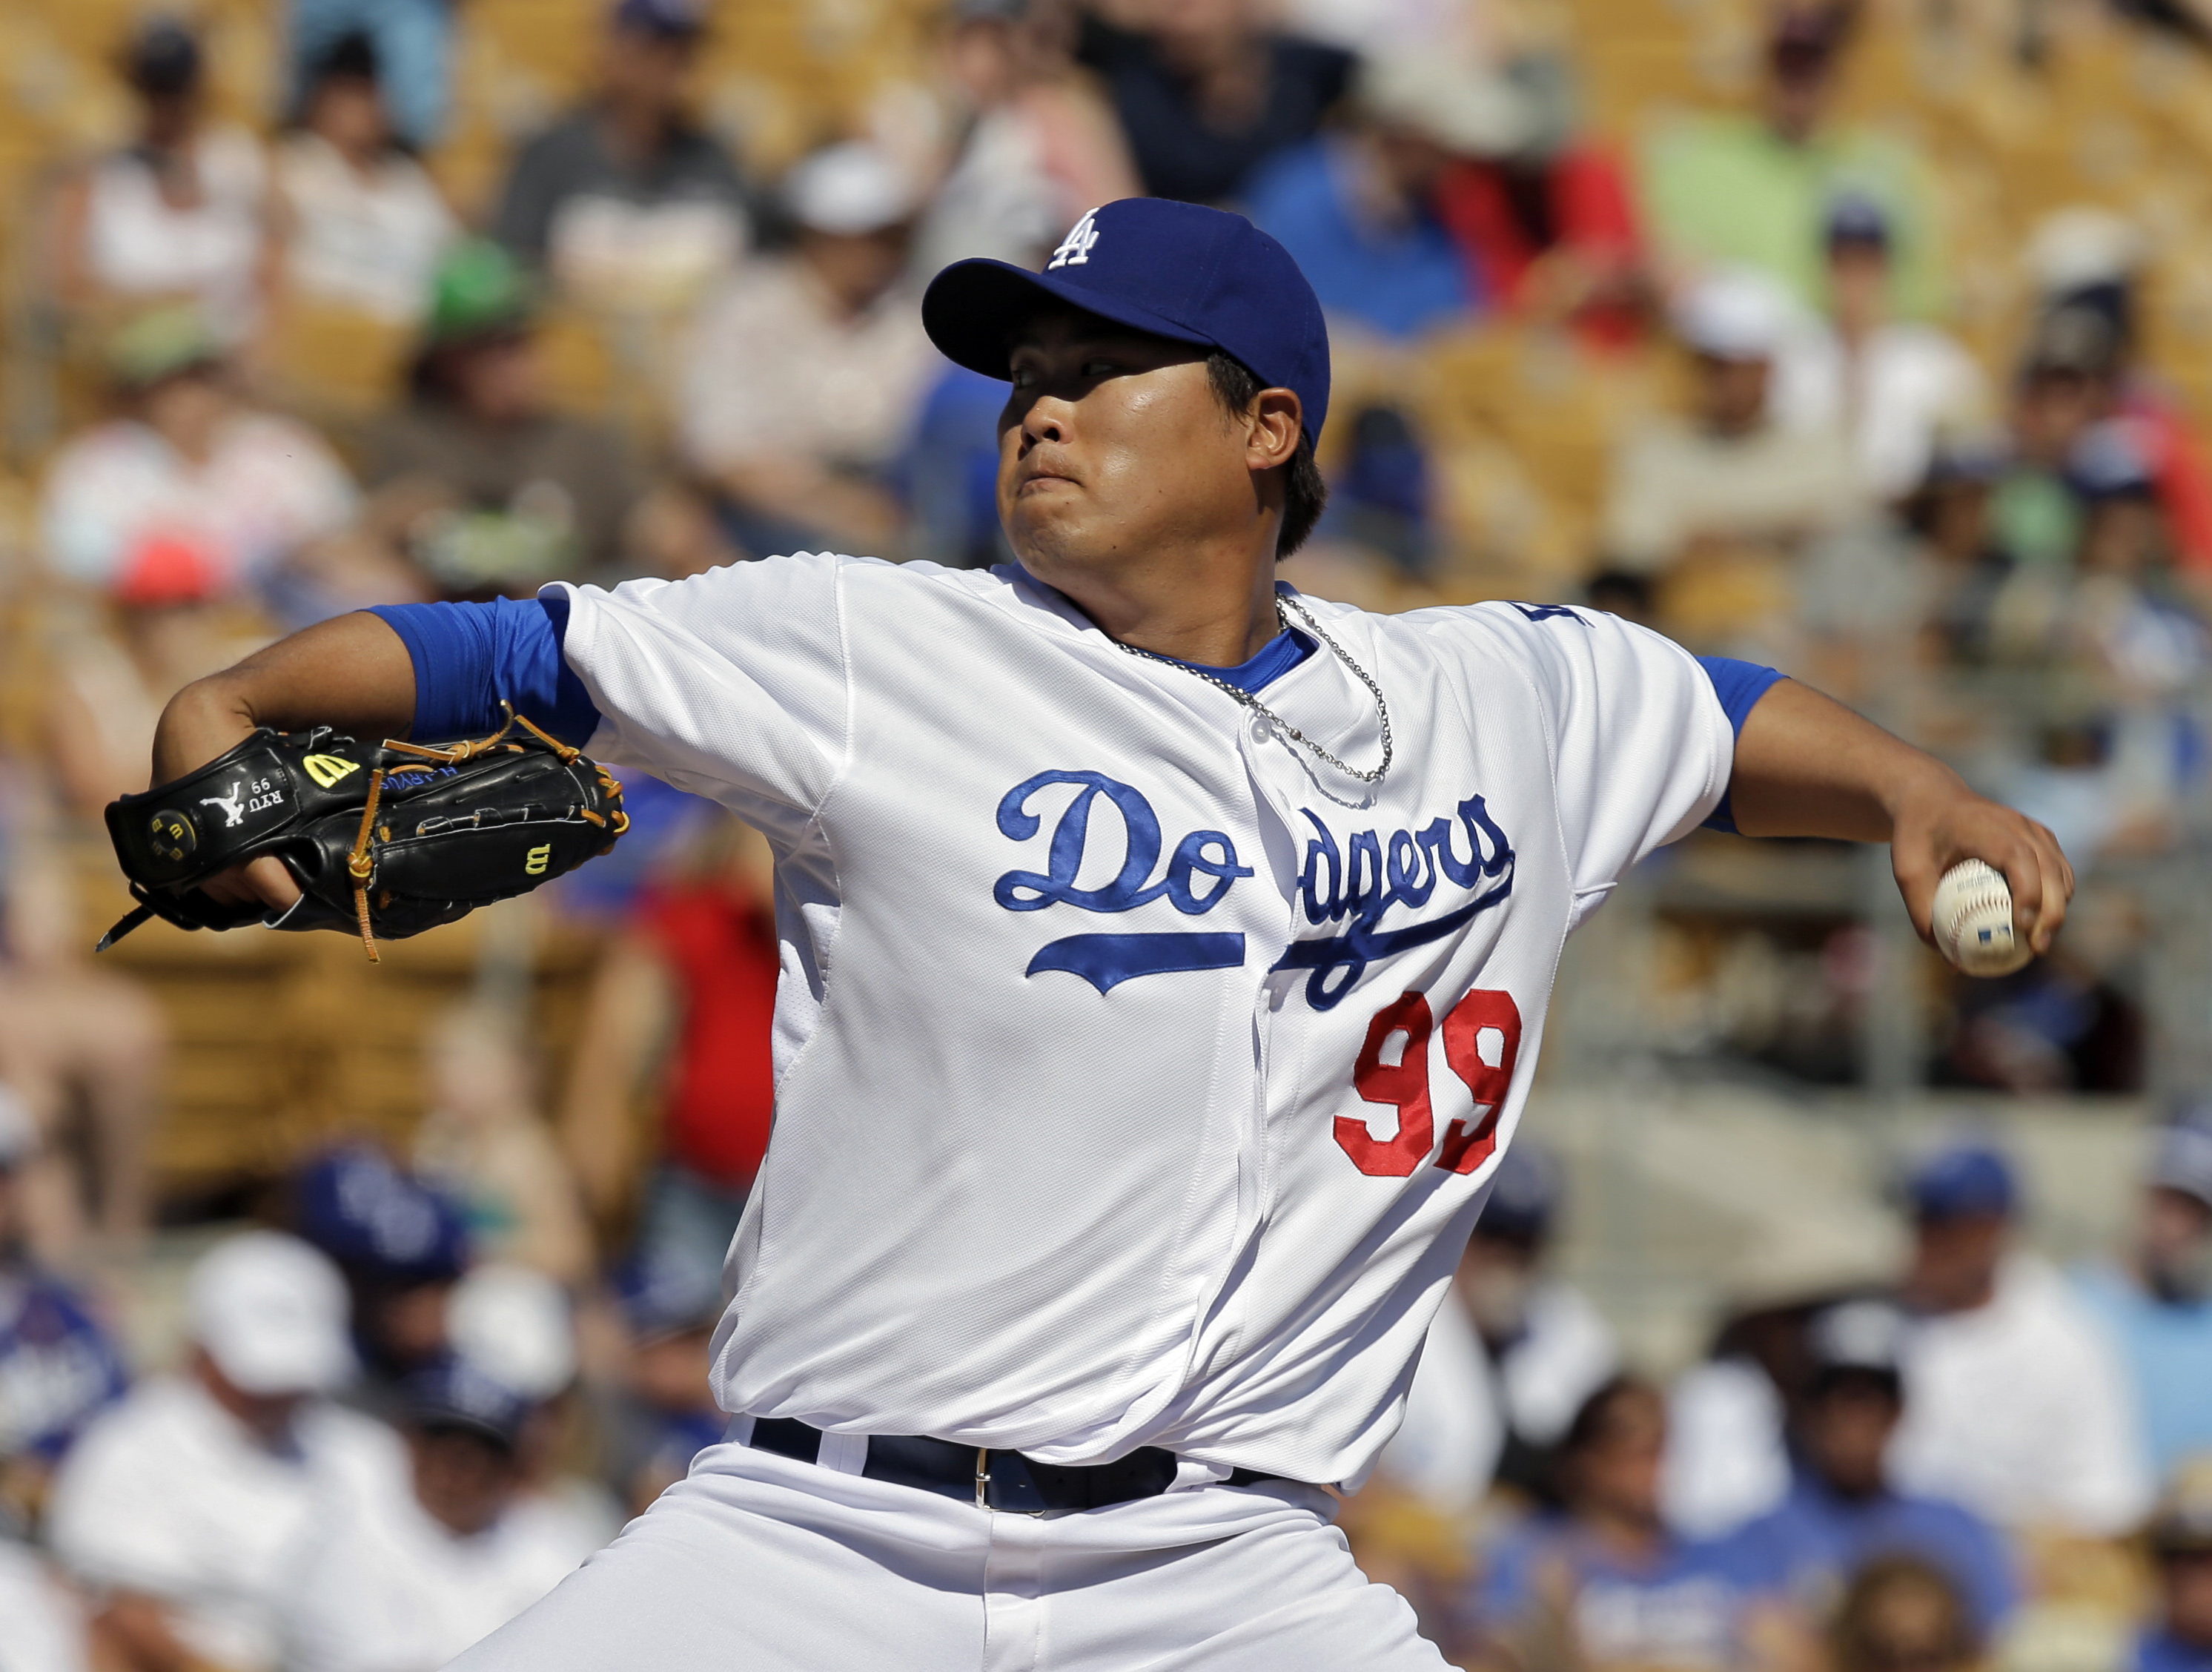 Los Angeles Dodgers starting pitcher Ryu Hyun-Jin, from South Korea, delivers against the Oakland Athletics in the fifth inning of a spring exhibition baseball game, Monday, March 10, 2014, in Glendale, Ariz. (AP Photo/Mark Duncan)